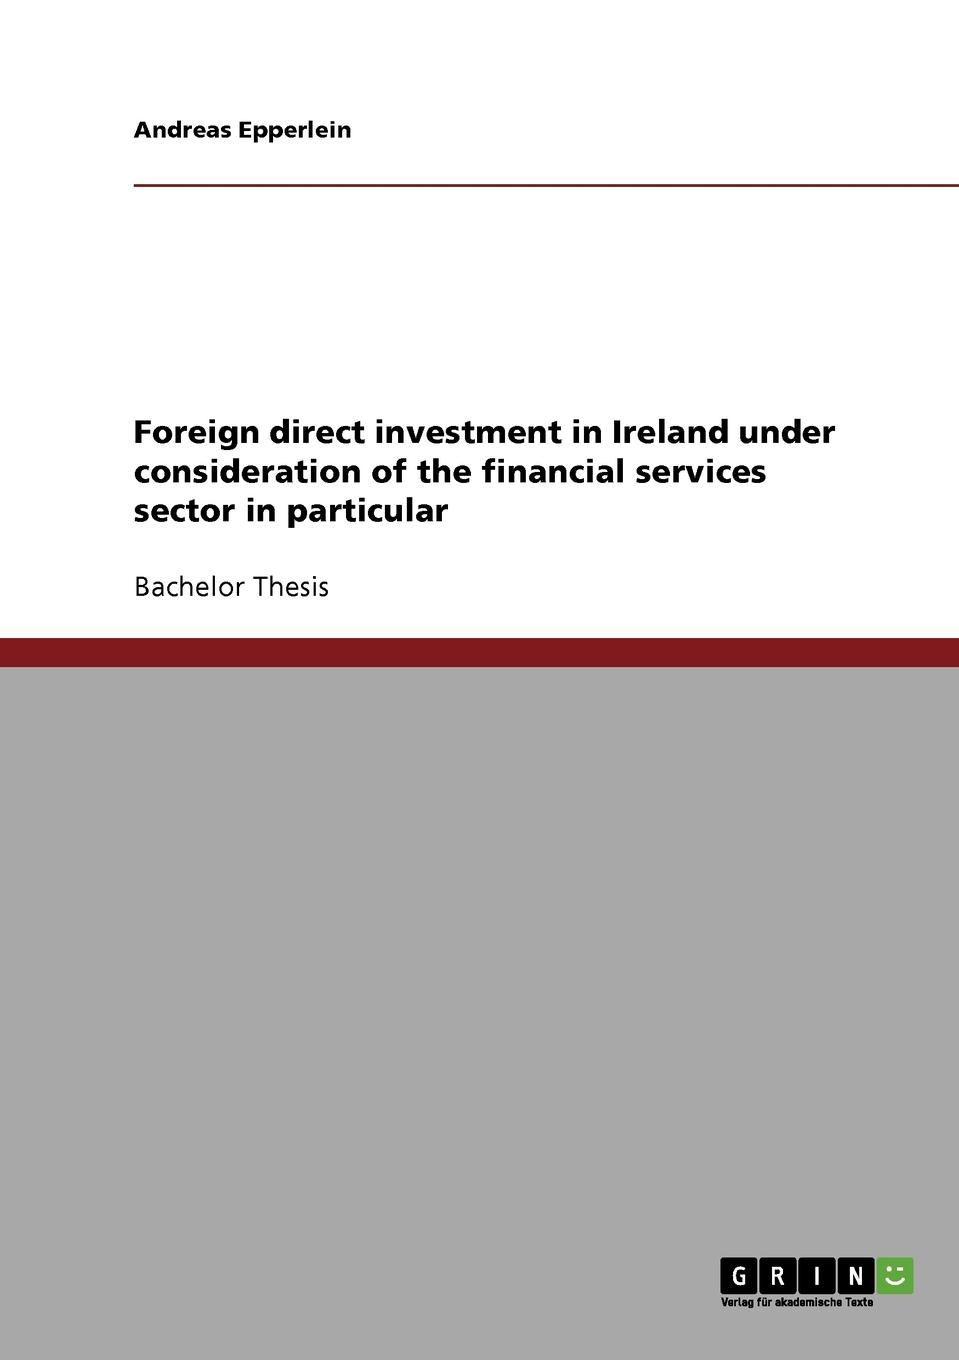 Andreas Epperlein Foreign direct investment in Ireland under consideration of the financial services sector in particular capital budgeting for foreign direct investment bangladesh overview